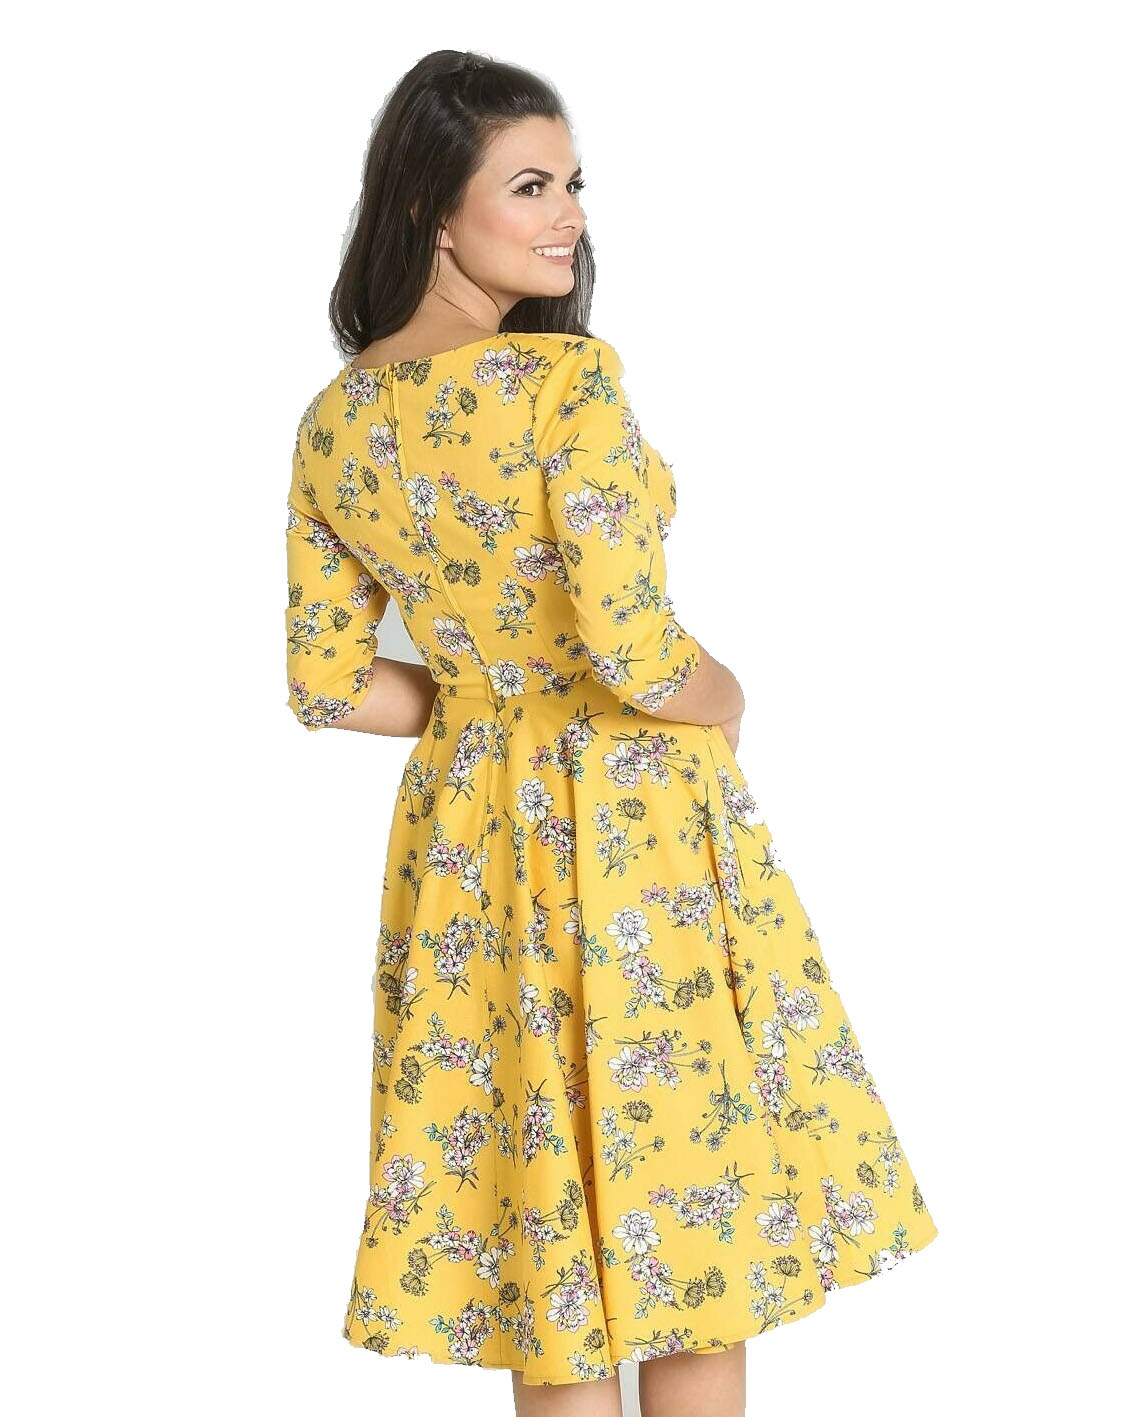 Hell-Bunny-40s-50s-Pin-Up-Vintage-Dress-MURIEL-Flowers-Yellow-All-Sizes thumbnail 9